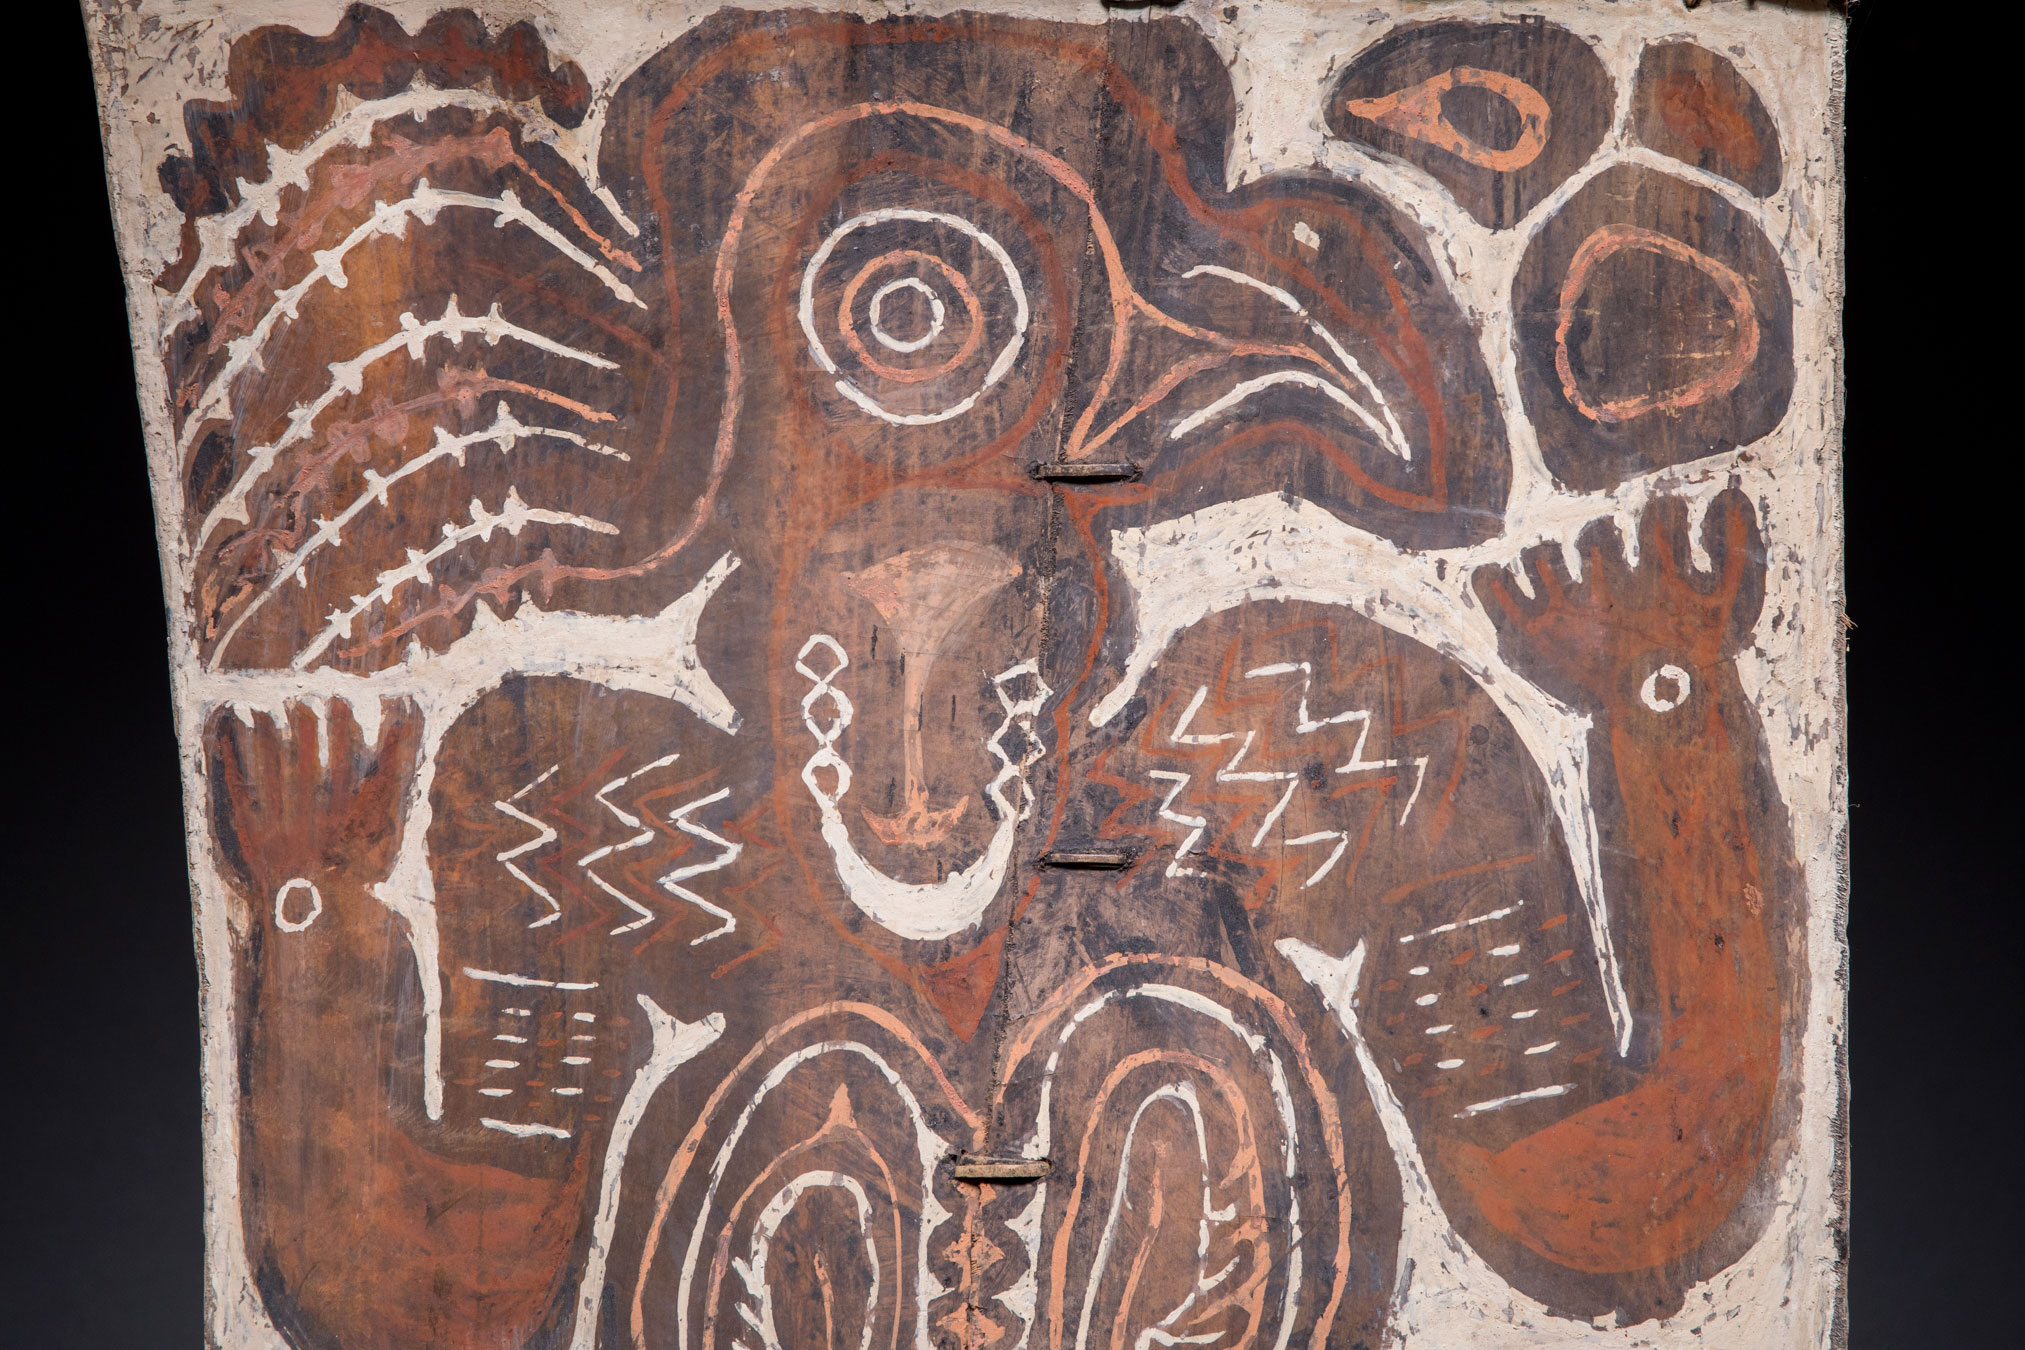 Papua New Guinea art objects and artifacts | ceremonial house painting